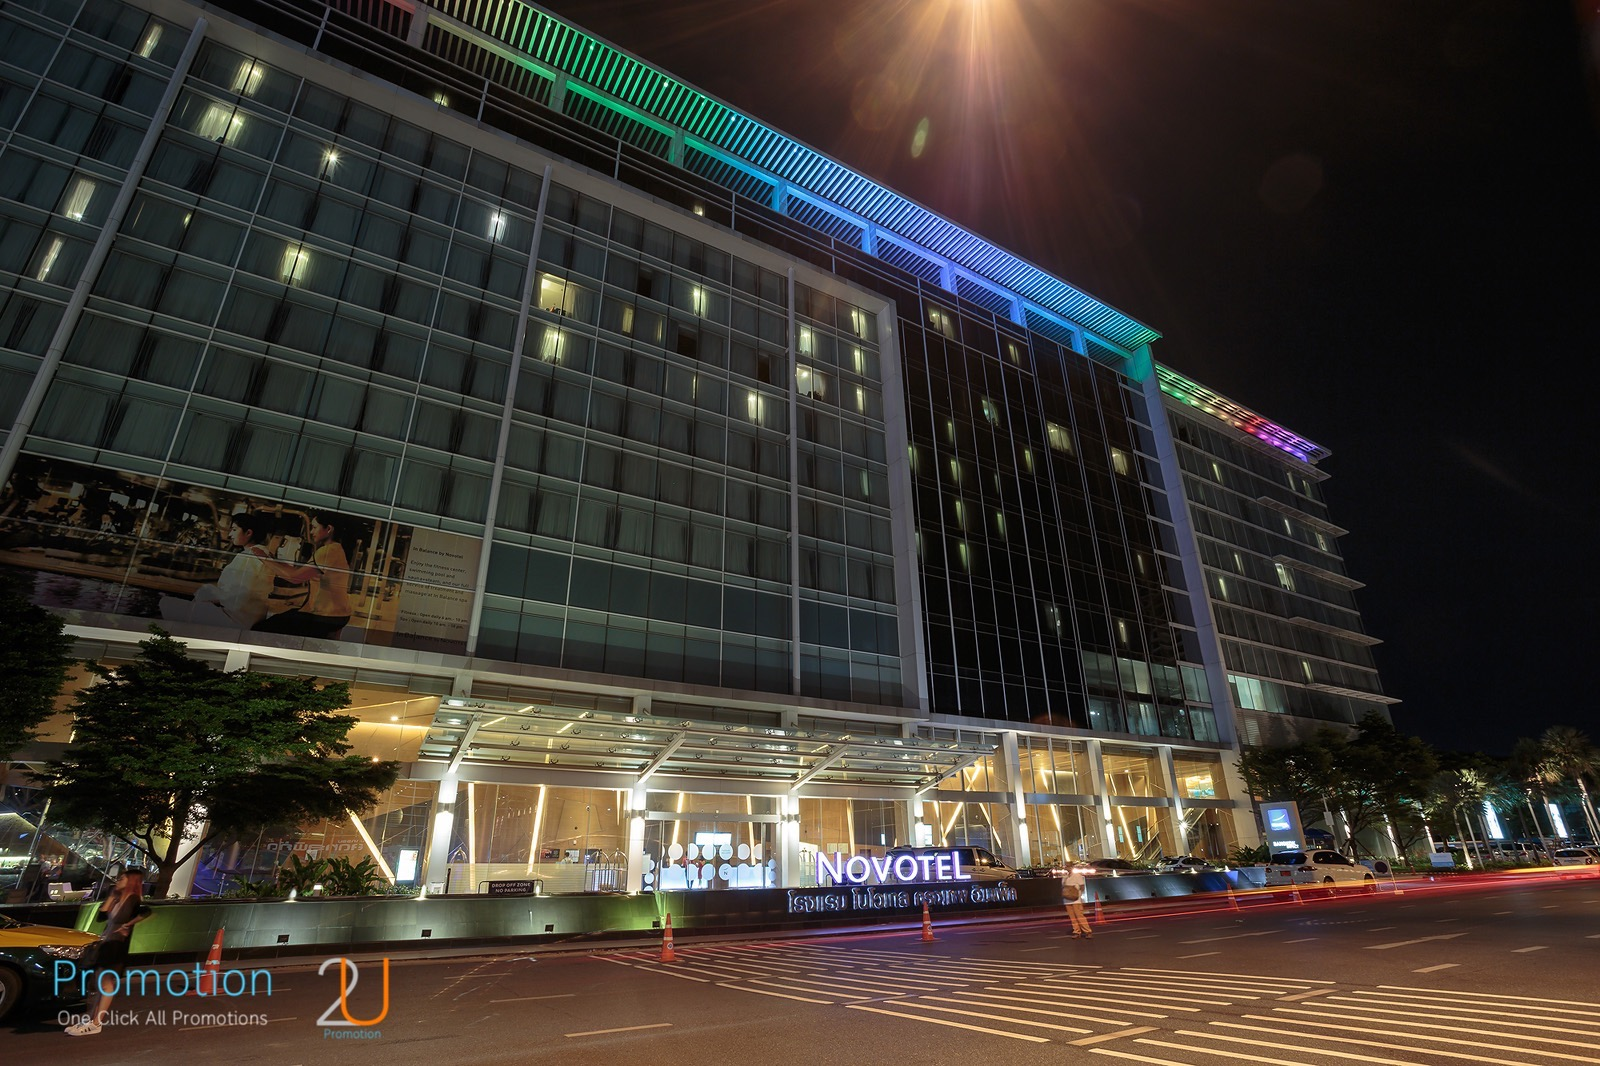 Review promotion muangthong koongtung bufft at the suare novotel impact P189